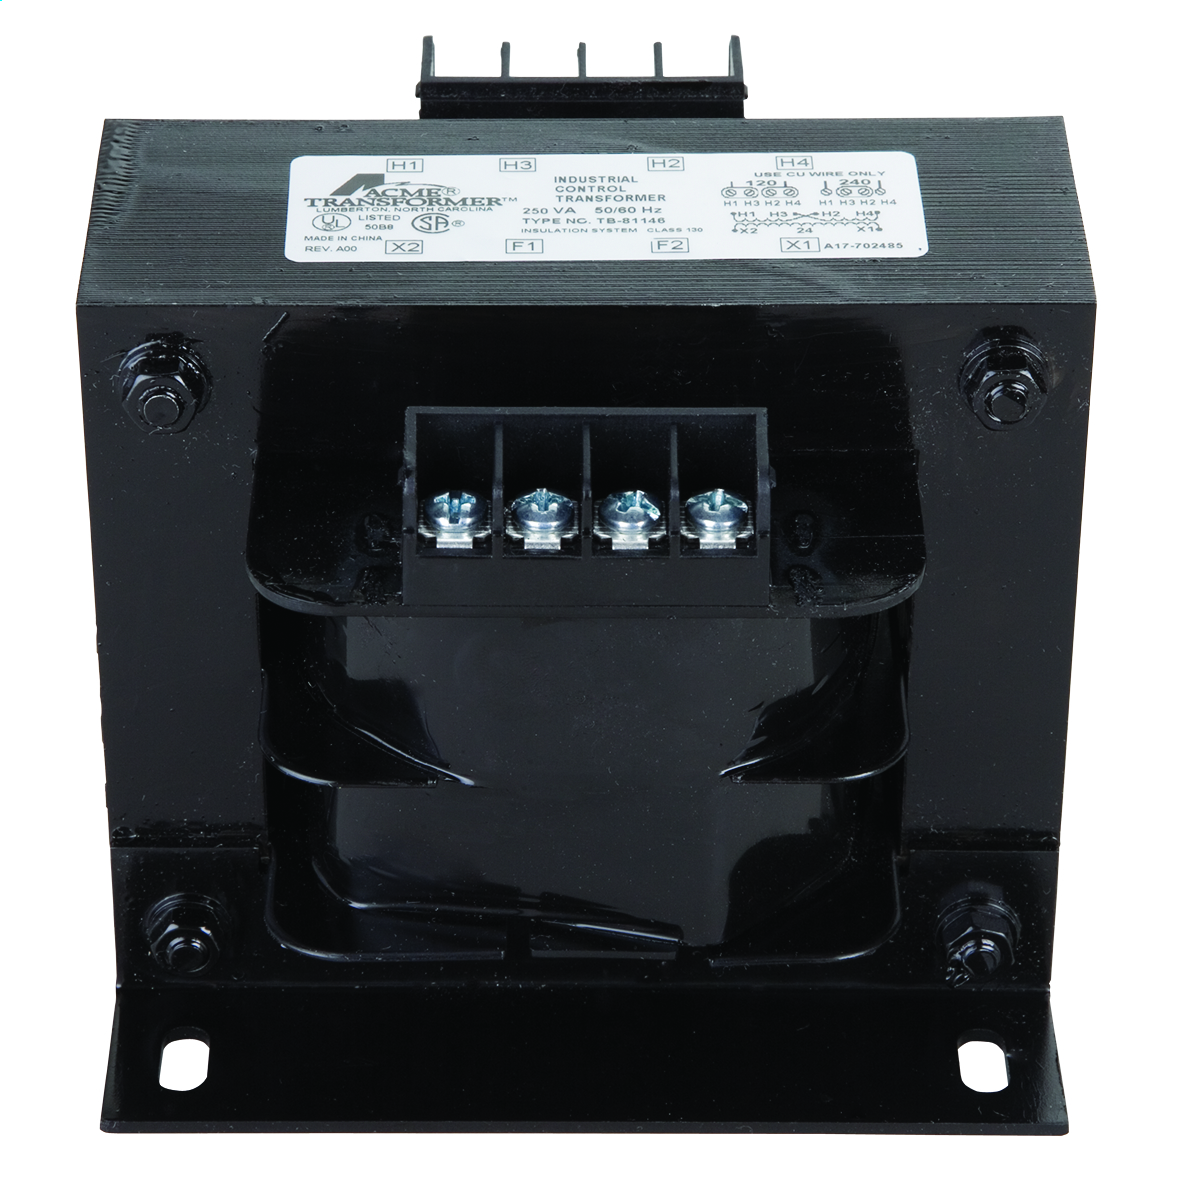 hight resolution of xfmtb181143 30526 industrial control transformers new 12 24 volt units single